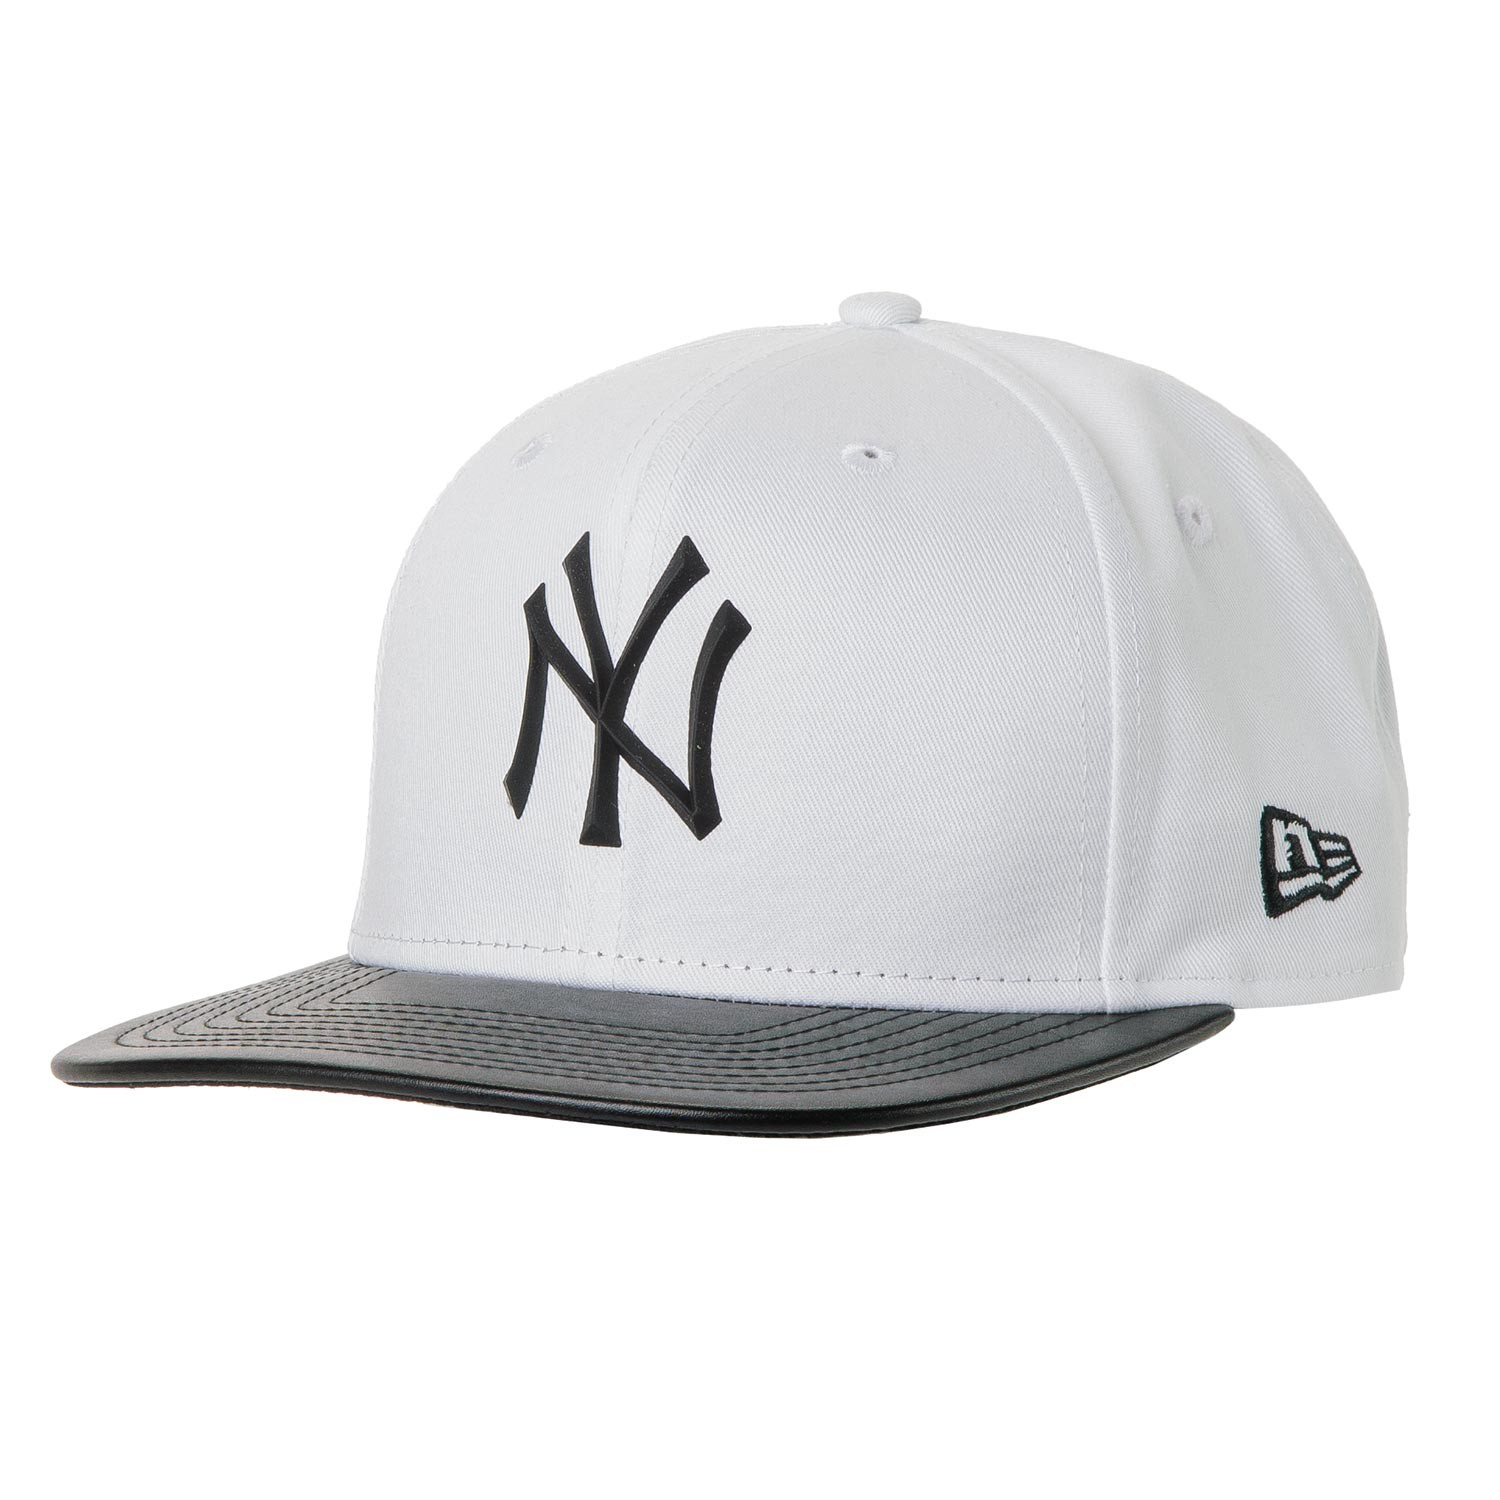 Kšiltovka New Era New York Yankees 9Fifty Mlb Rubber Prime white/black vel.S/M 16 + doručení do 24 hodin